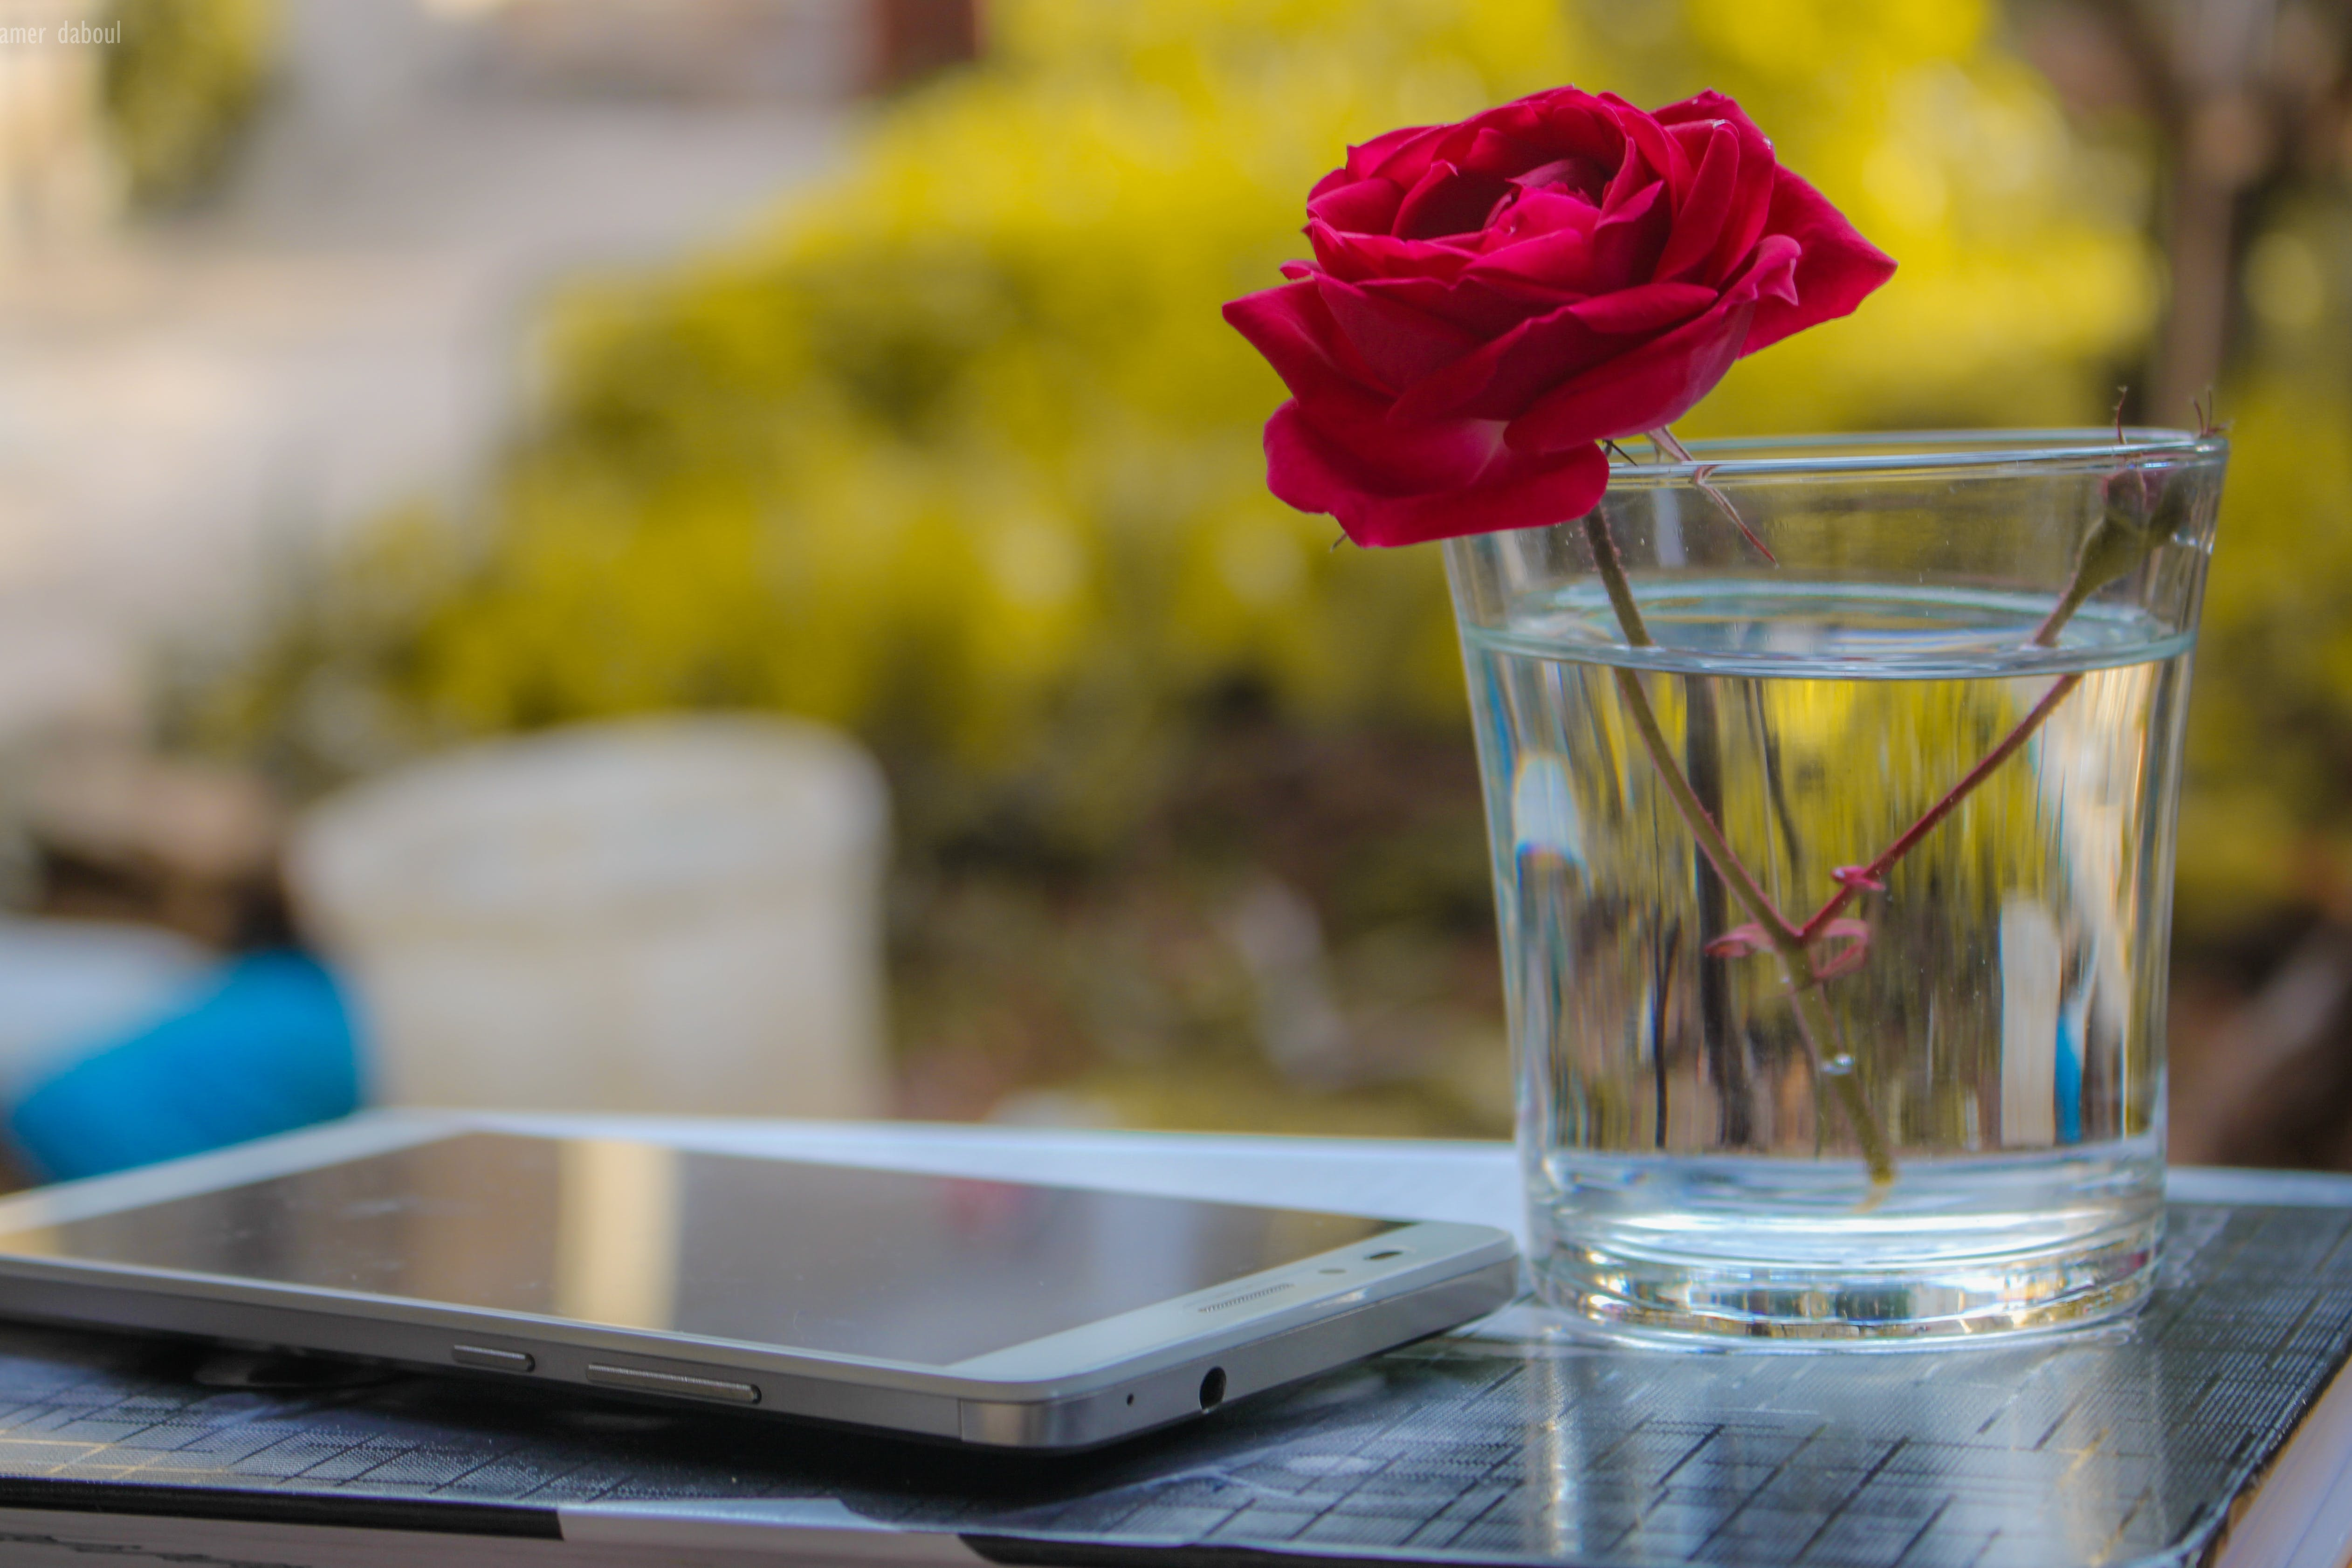 White Android Smartphone Near Clear Glass Vase With Red Rose